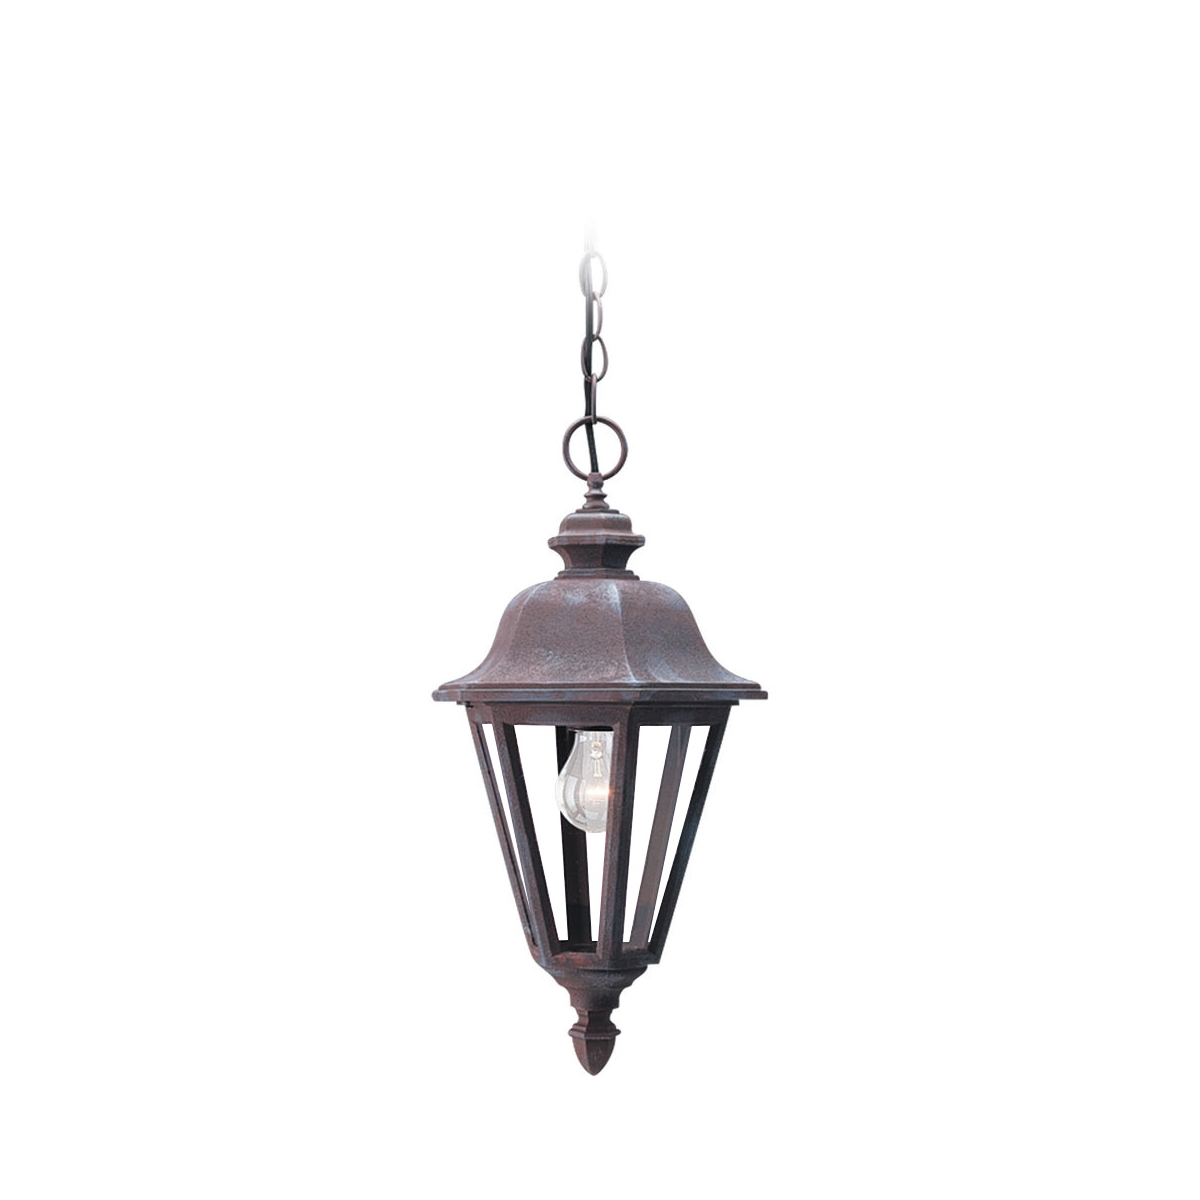 Sea Gull Lighting Brentwood 1 Light Outdoor Pendant in Sienna 6025-26 photo